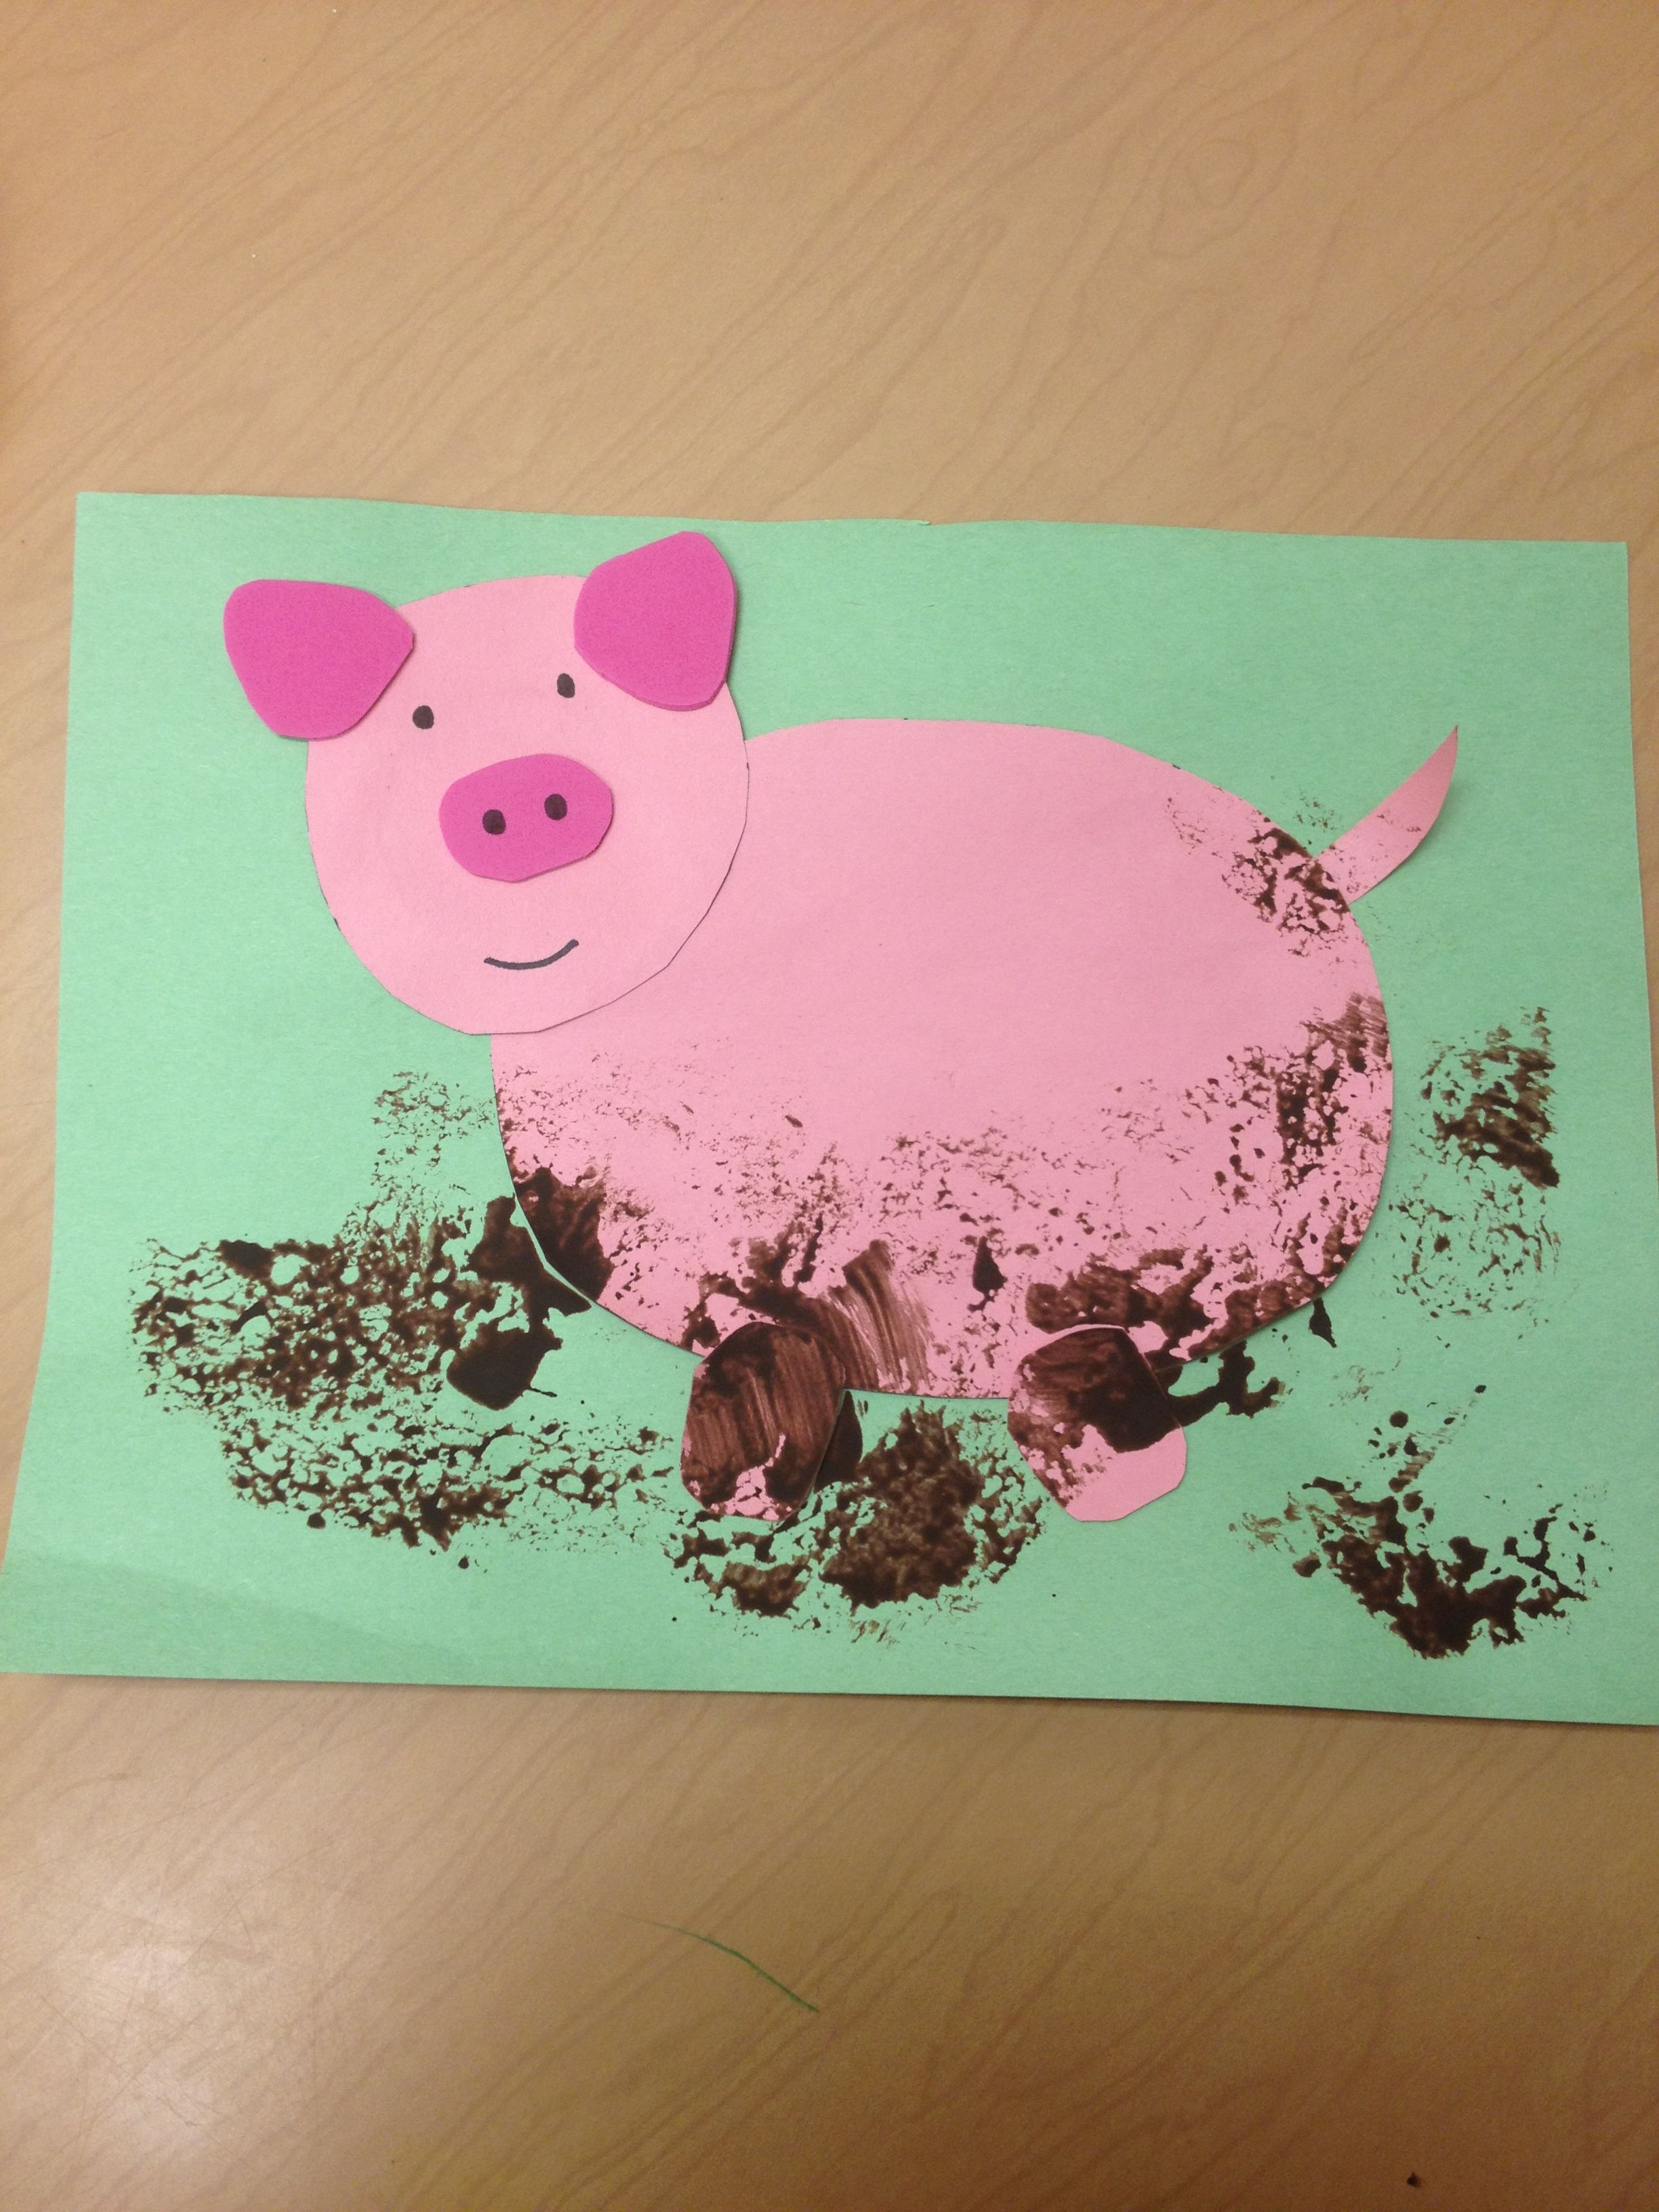 Pre k arts and crafts -  Arts And Crafts Pre K Muddy Pig Craft Download